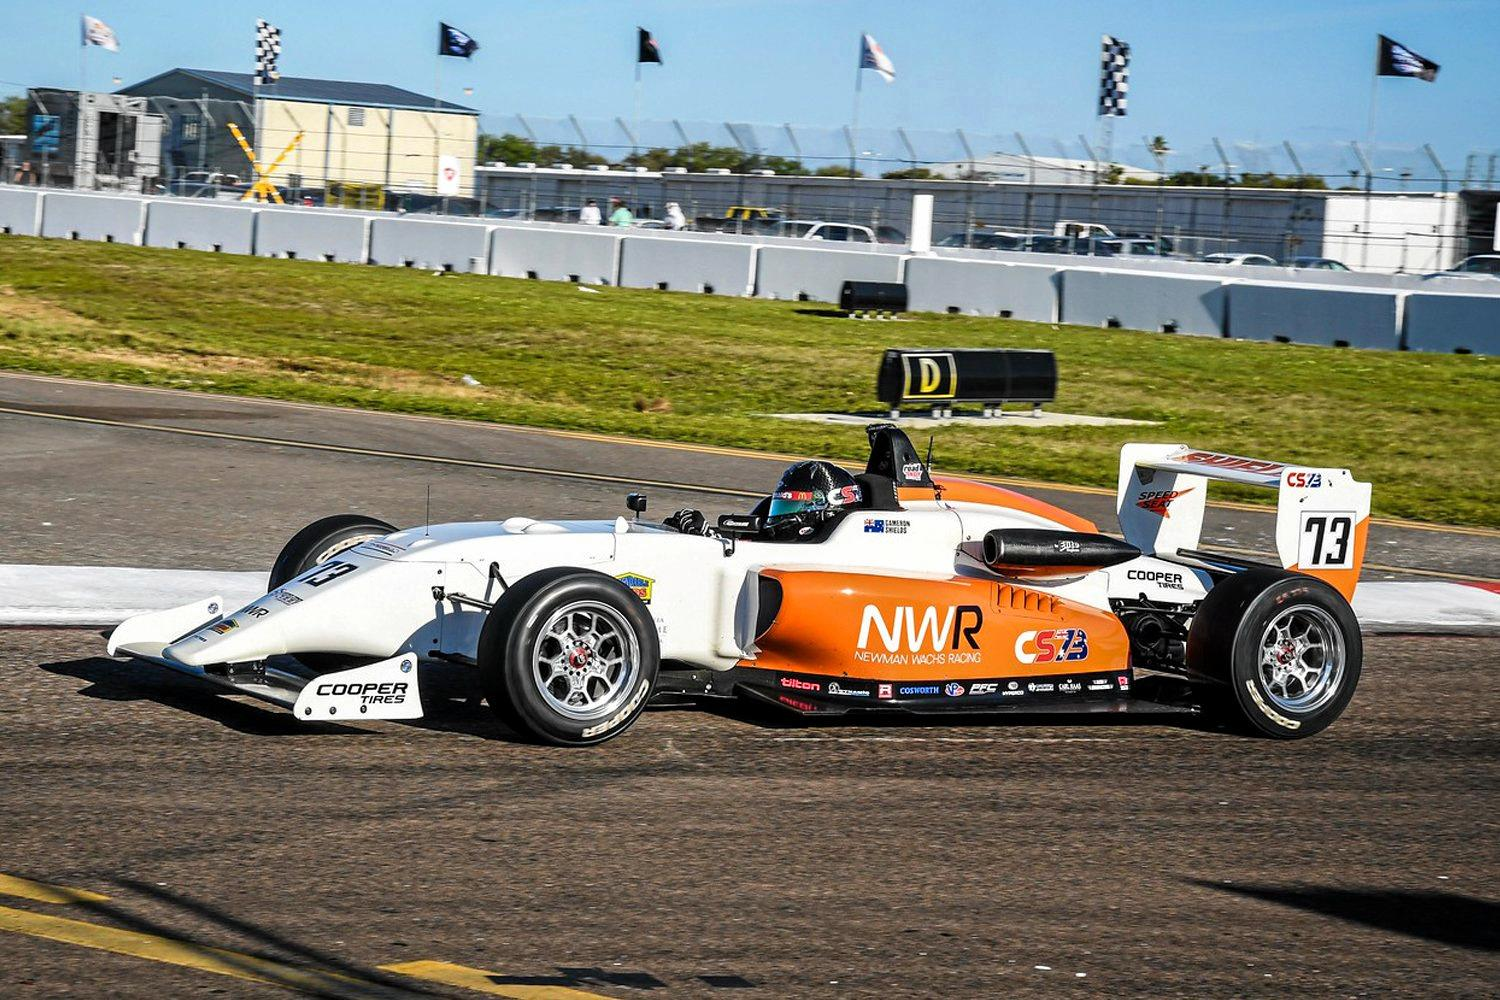 RACE DEBUT: Toowoomba's Cameron Shields made his Road to Indy Presented by Cooper Tires debut in the USF2000 program at the Grand Prix of St Petersburg, finishing with a top result of 11th.